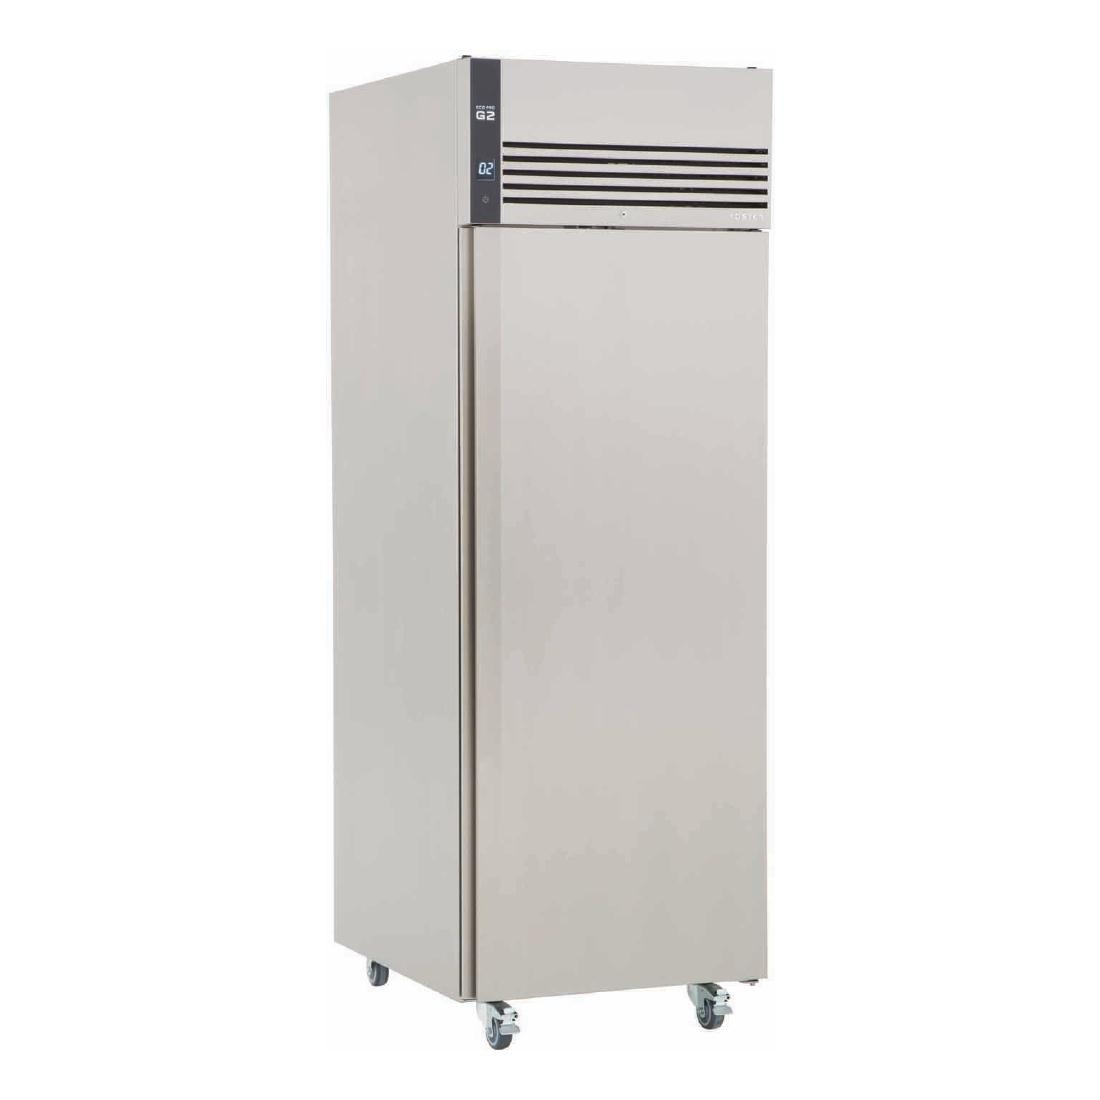 Foster EcoPro G2 1 Door 600Ltr Cabinet Fridge with Back EP700H 10/113